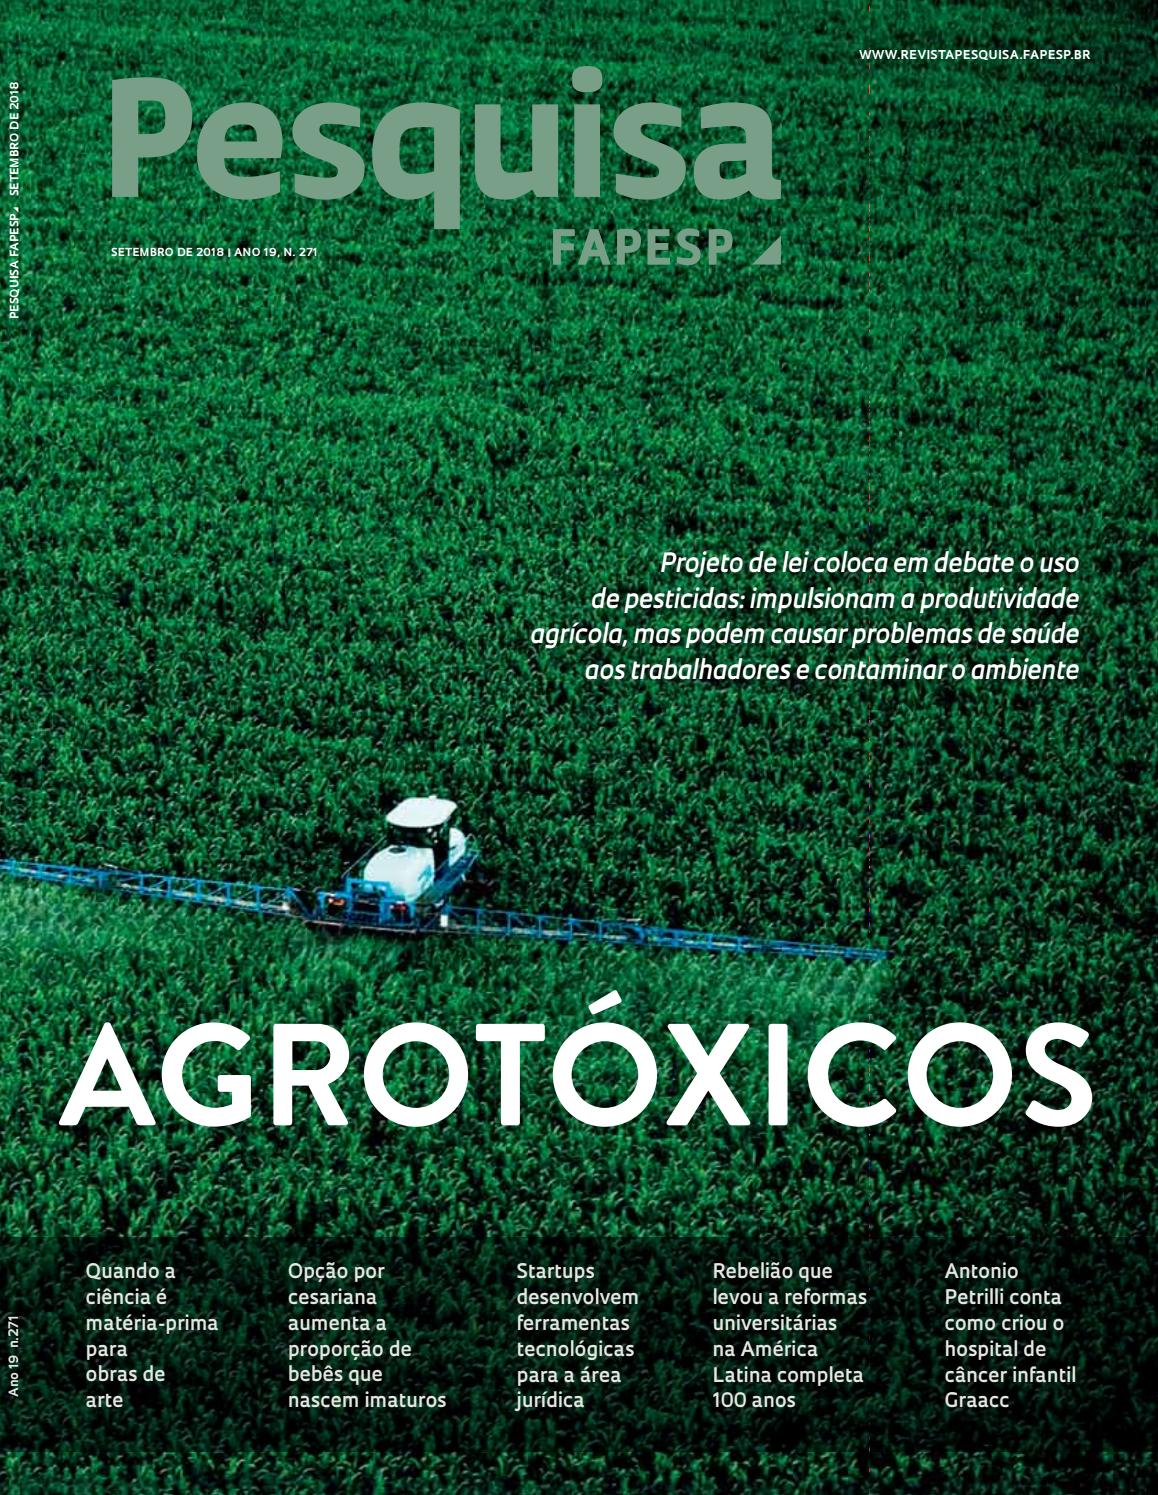 934bd1cf3 Agrotóxicos by Pesquisa Fapesp - issuu